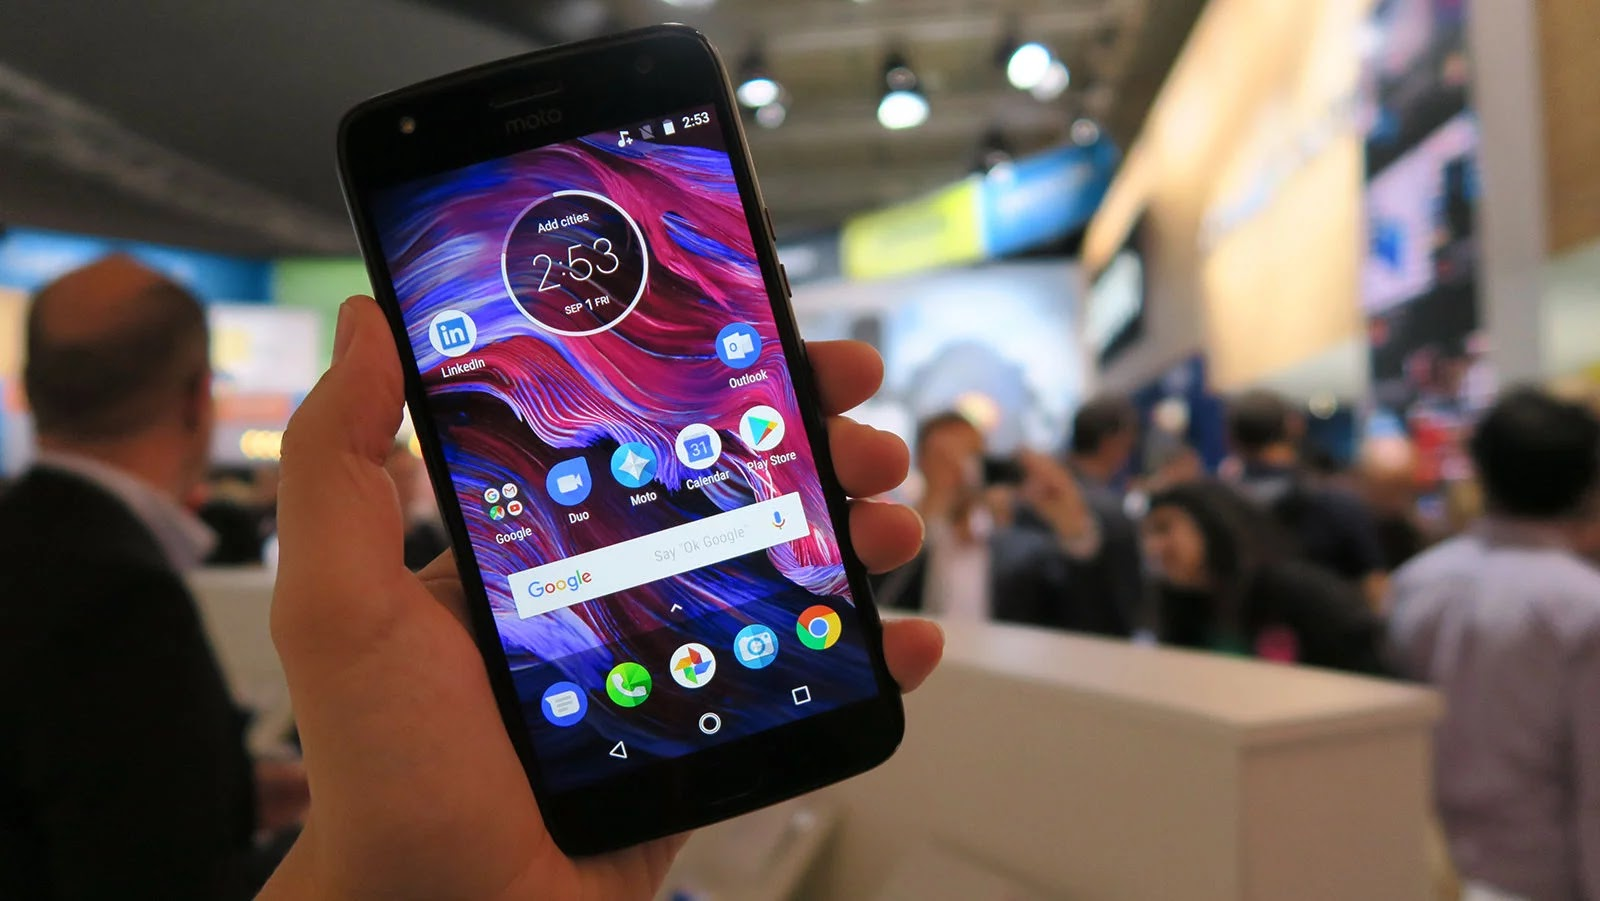 Motorola Launches the Moto x4 and Moto z2